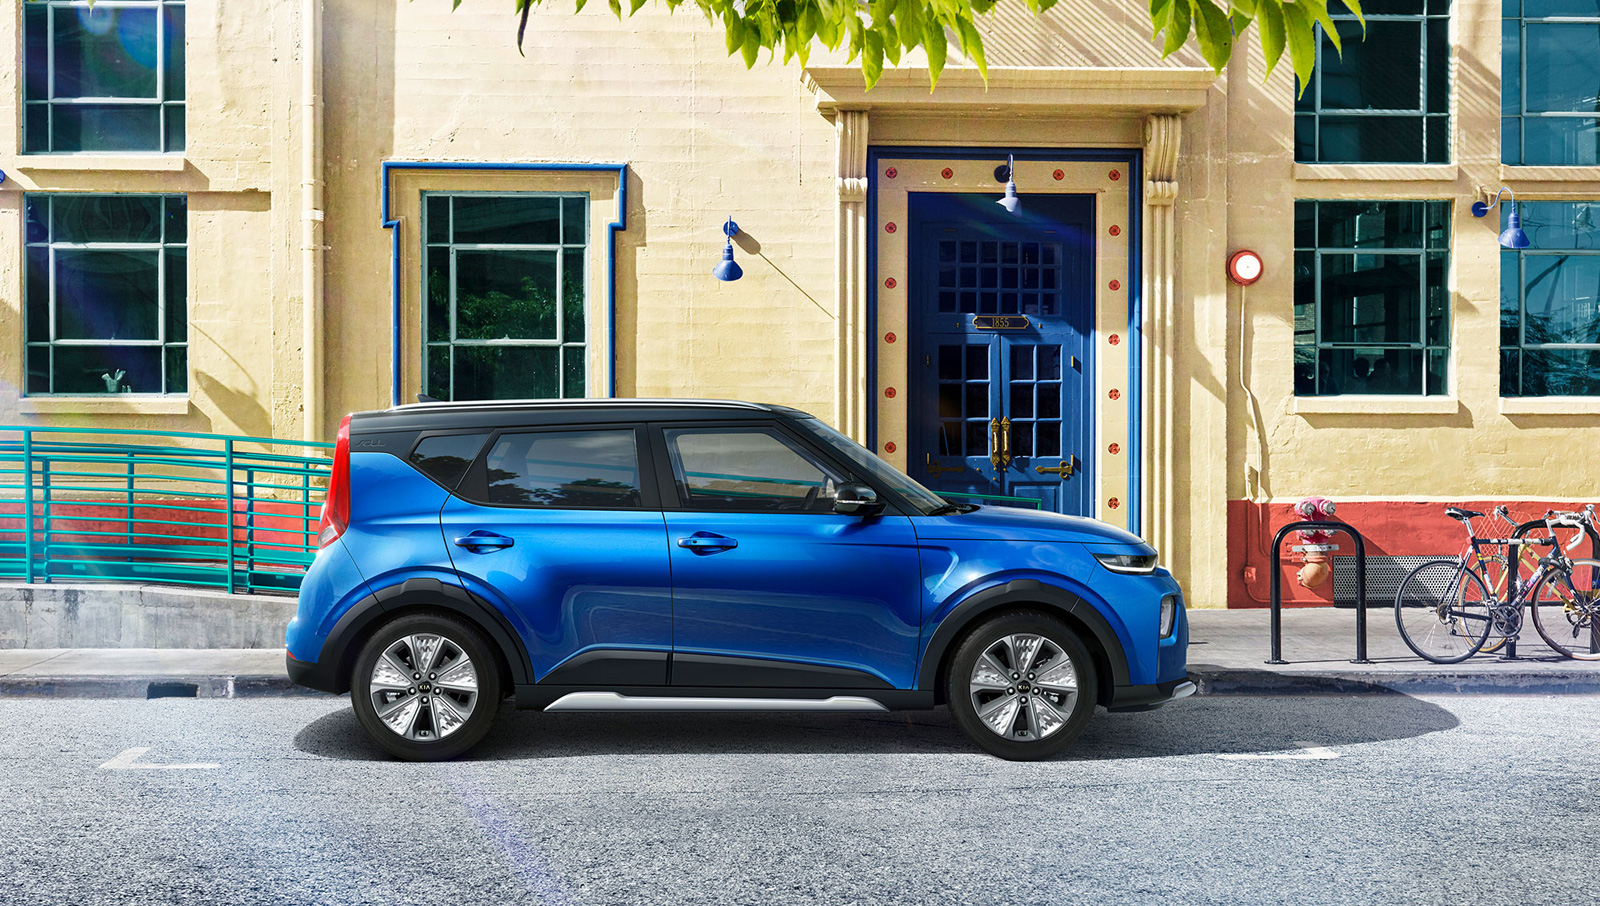 Kia Announces The New E-Soul For Europe - 2022 Kia Soul Ev Specifications, Exterior Concept, Price